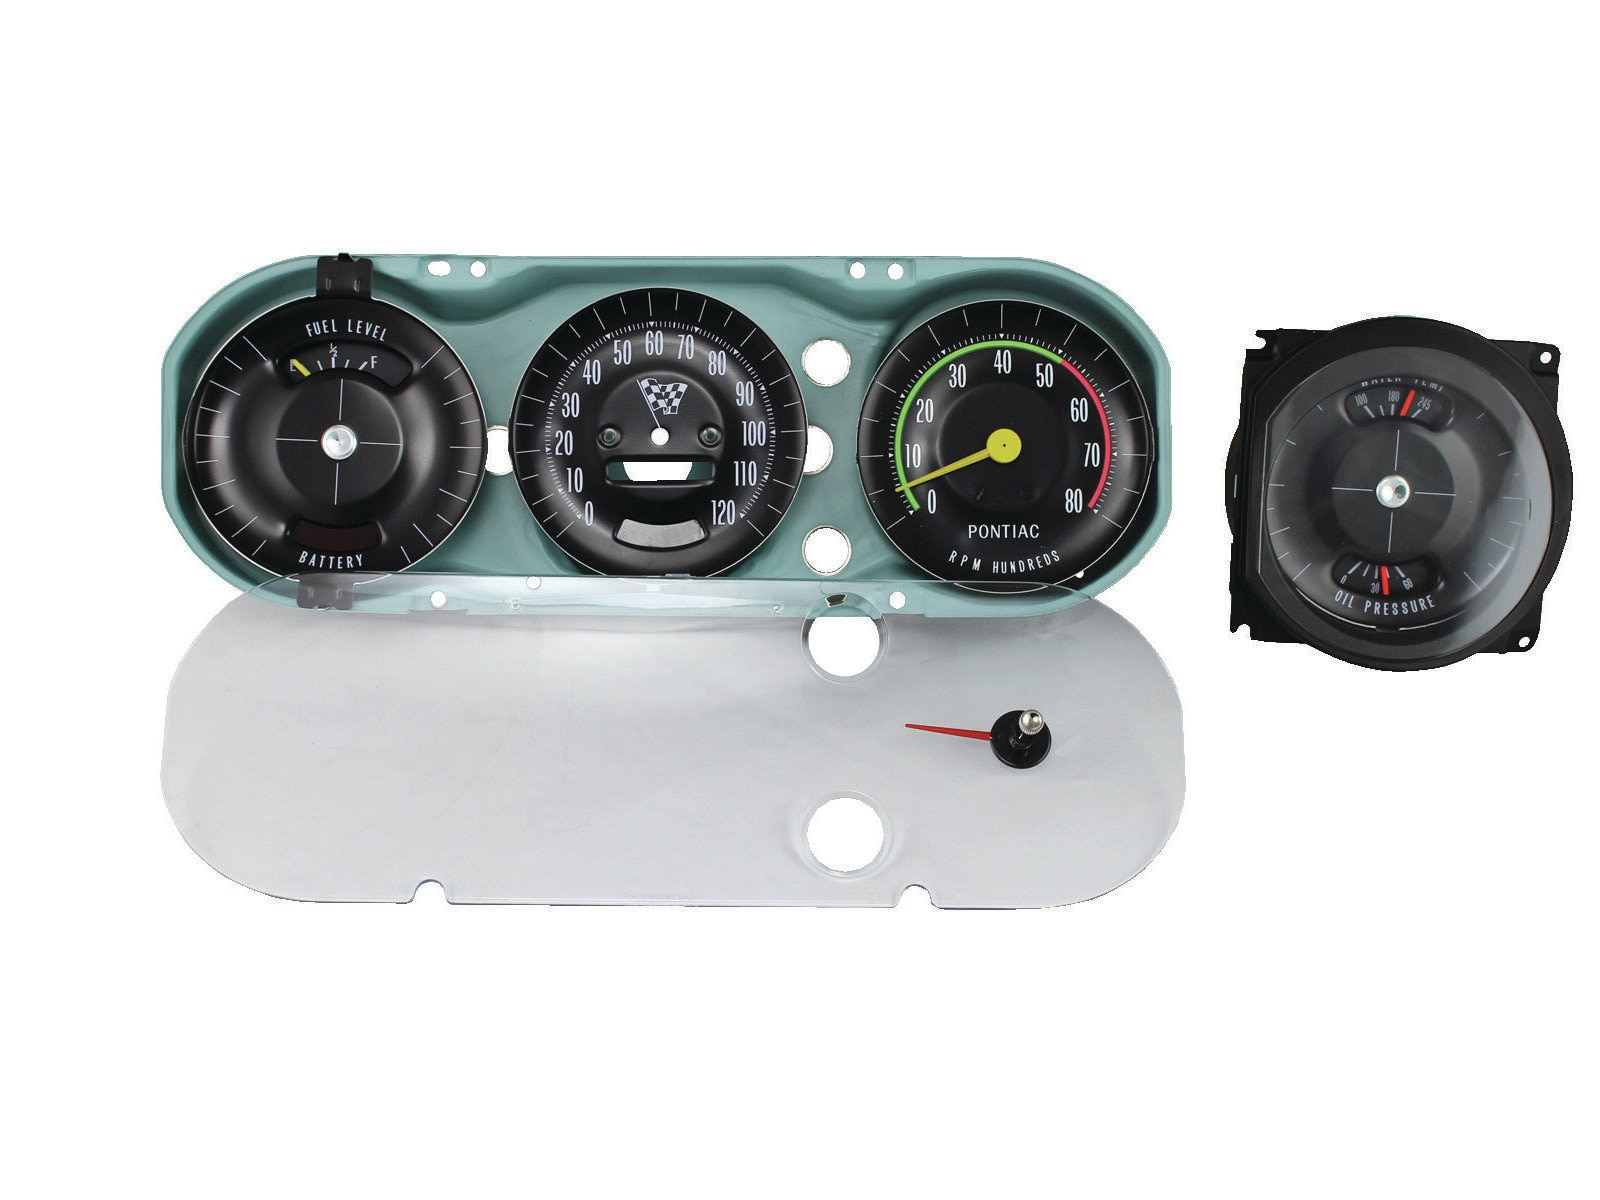 hight resolution of fast ez efi 65 67 gto rally gauges zephyr vacuum motorhead gear rh hotrod com 1967 gto wiring diagram 1967 gto wiring diagram